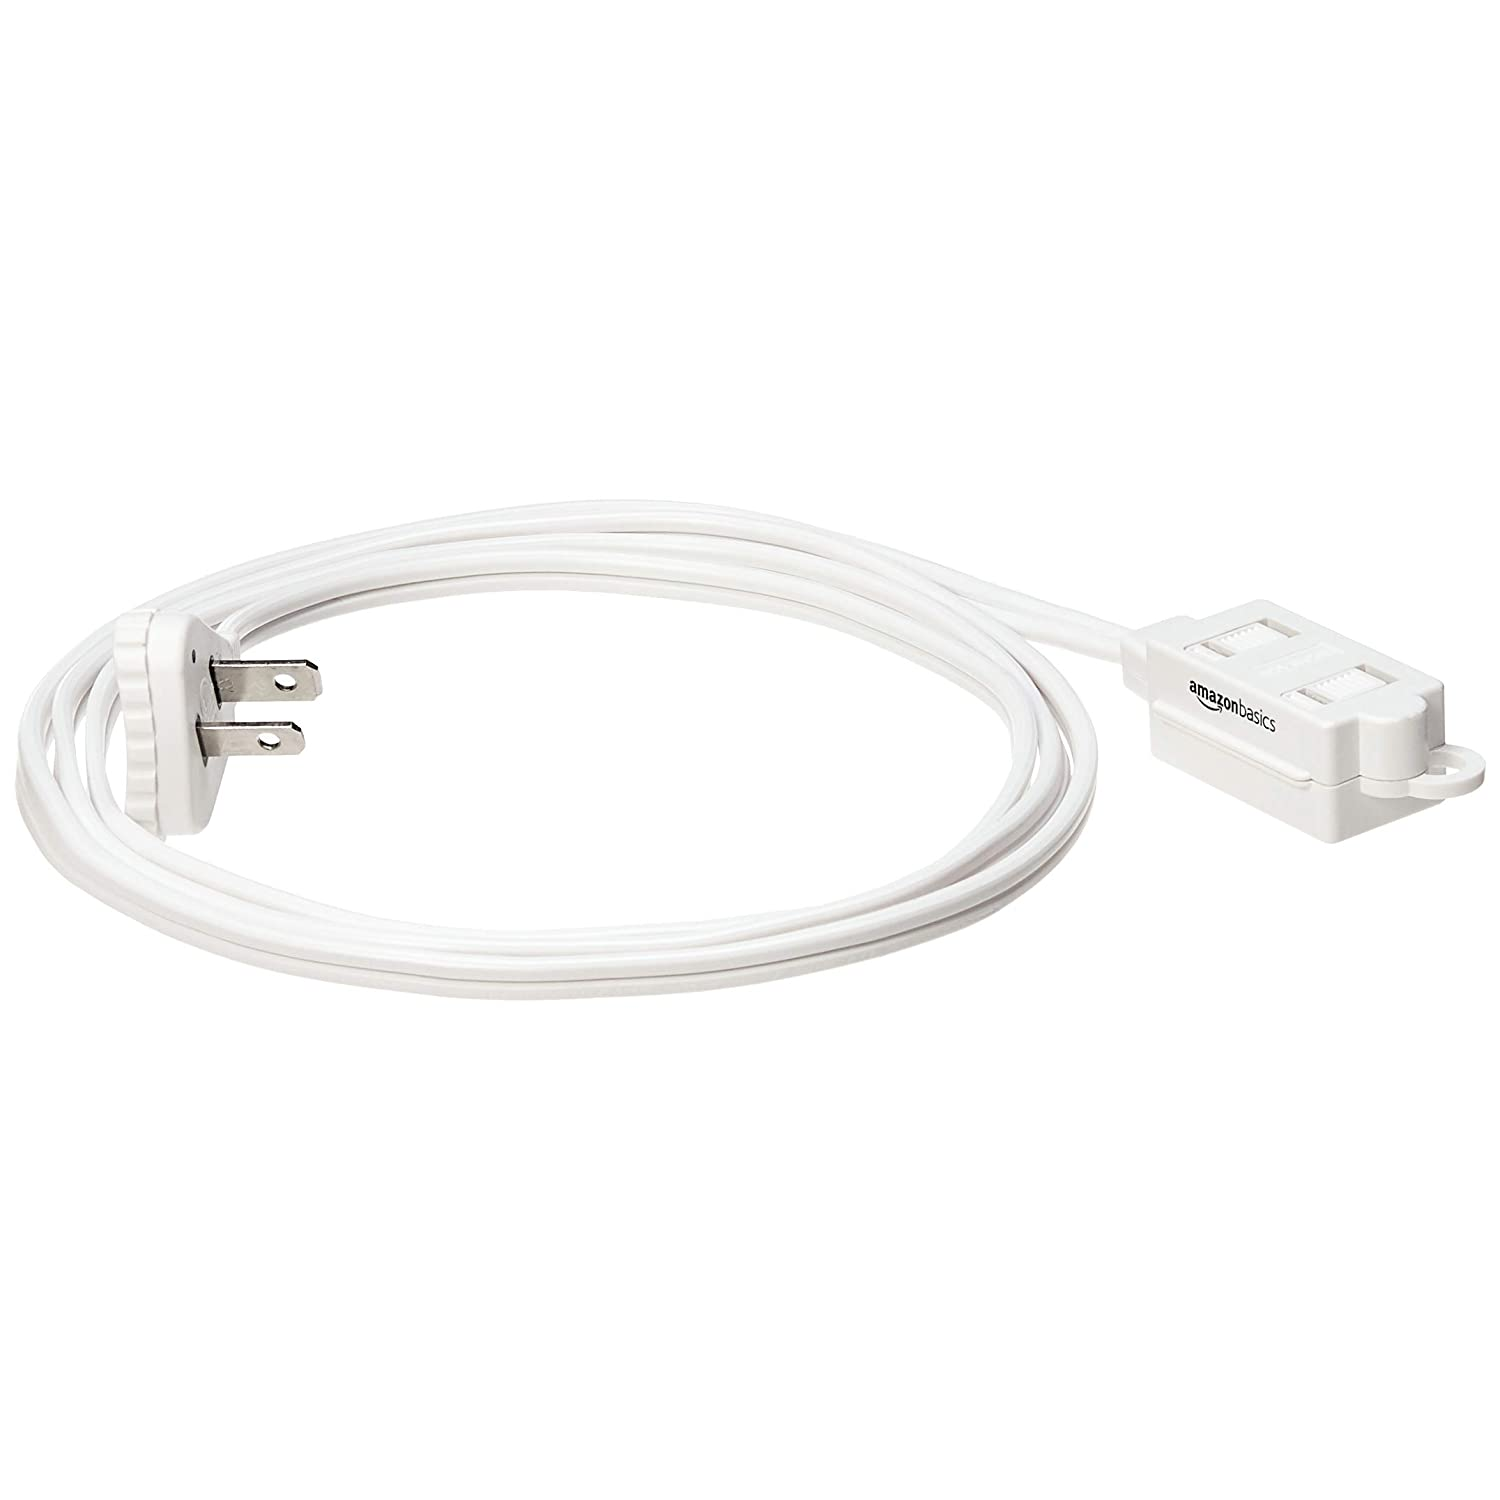 Flat Plug 6-Foot Grounded Basics Indoor Extension Cord 2-Pack White